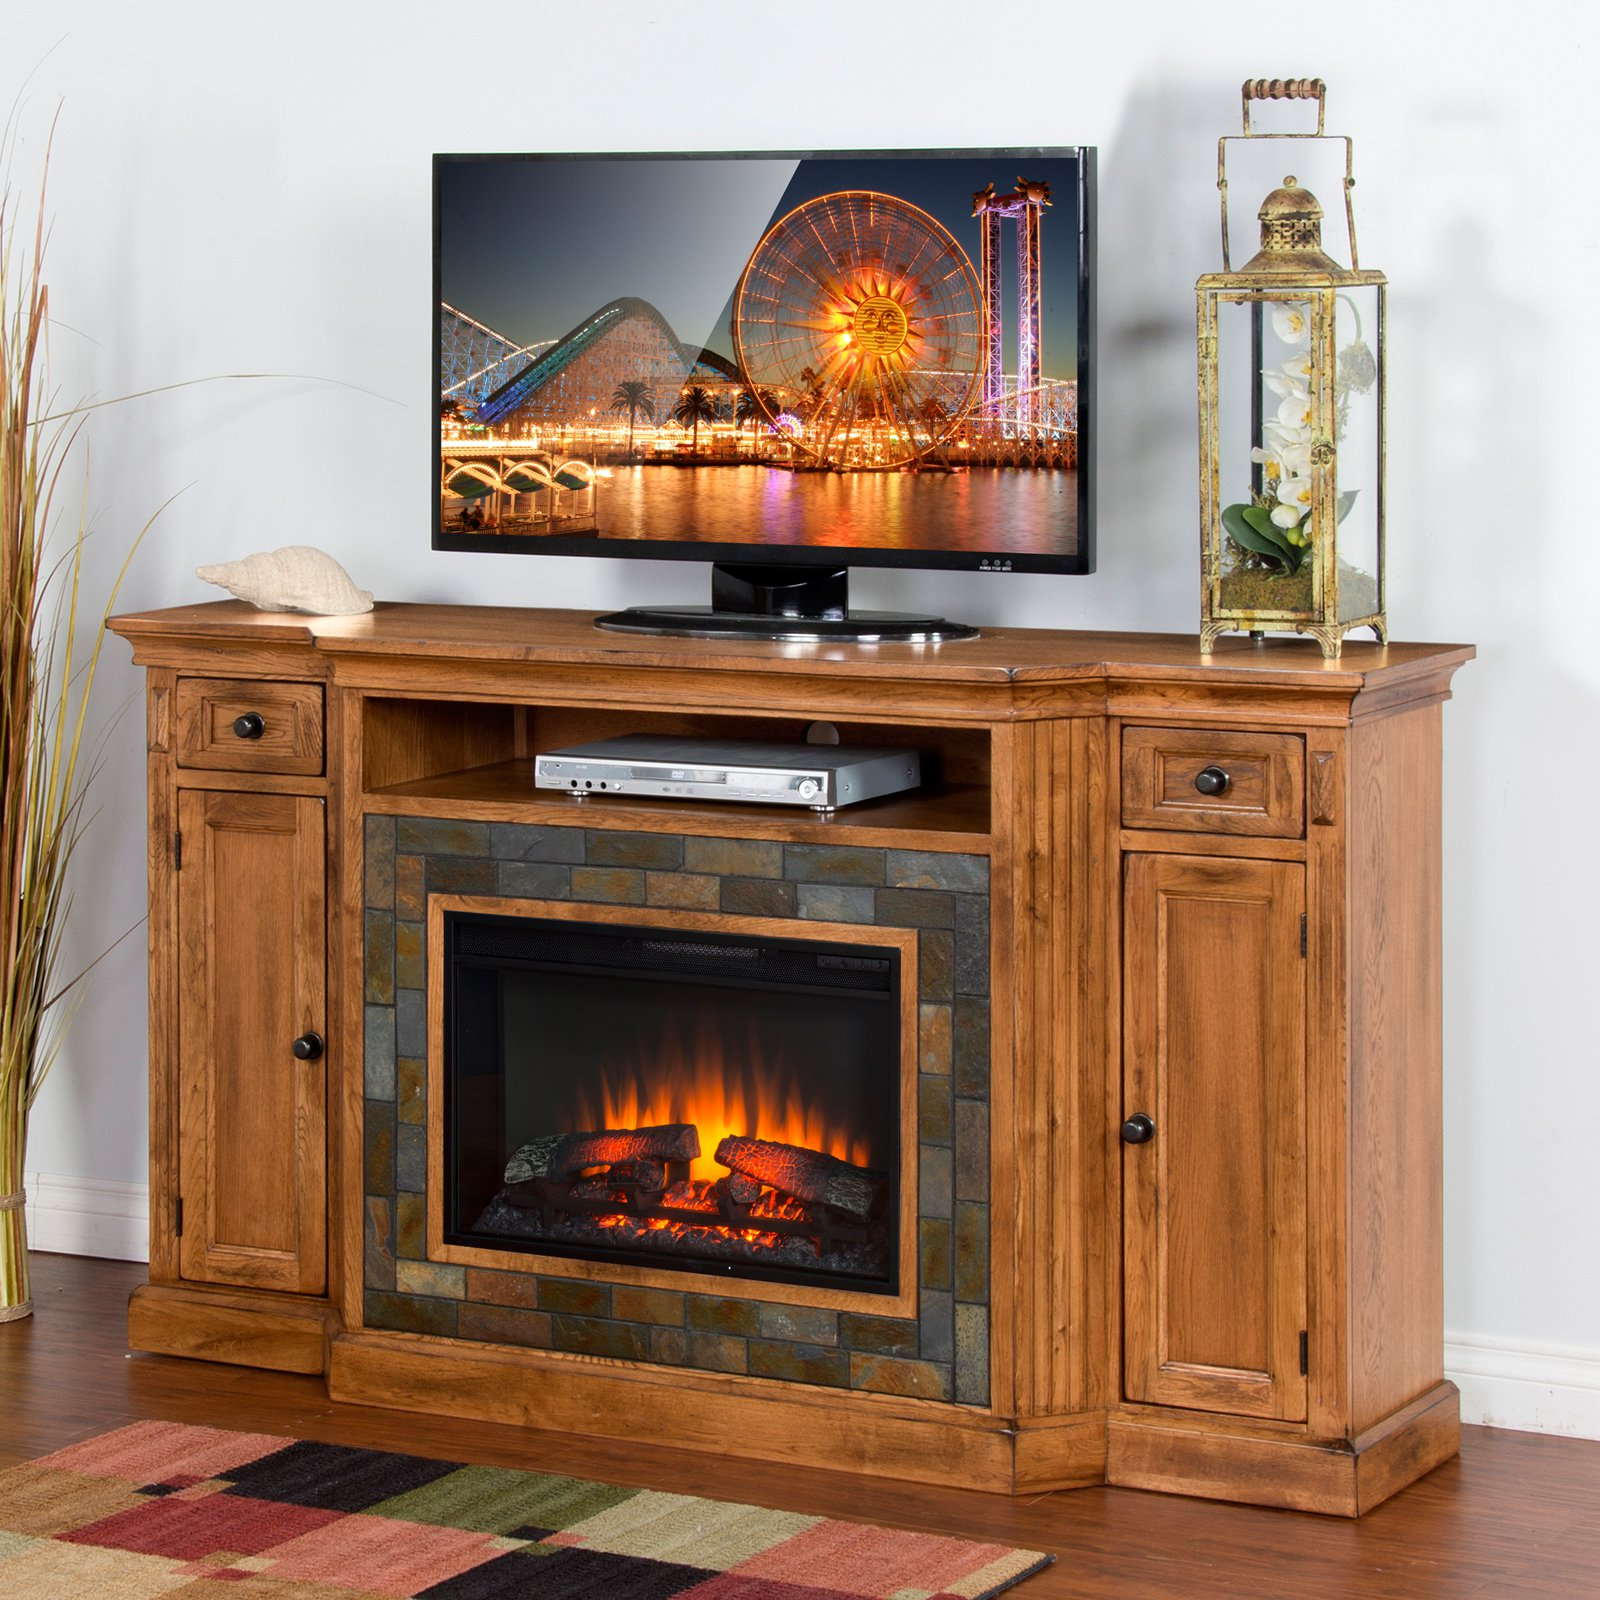 Sunny Designs Sedona 72 in. Electric Fireplace TV Console